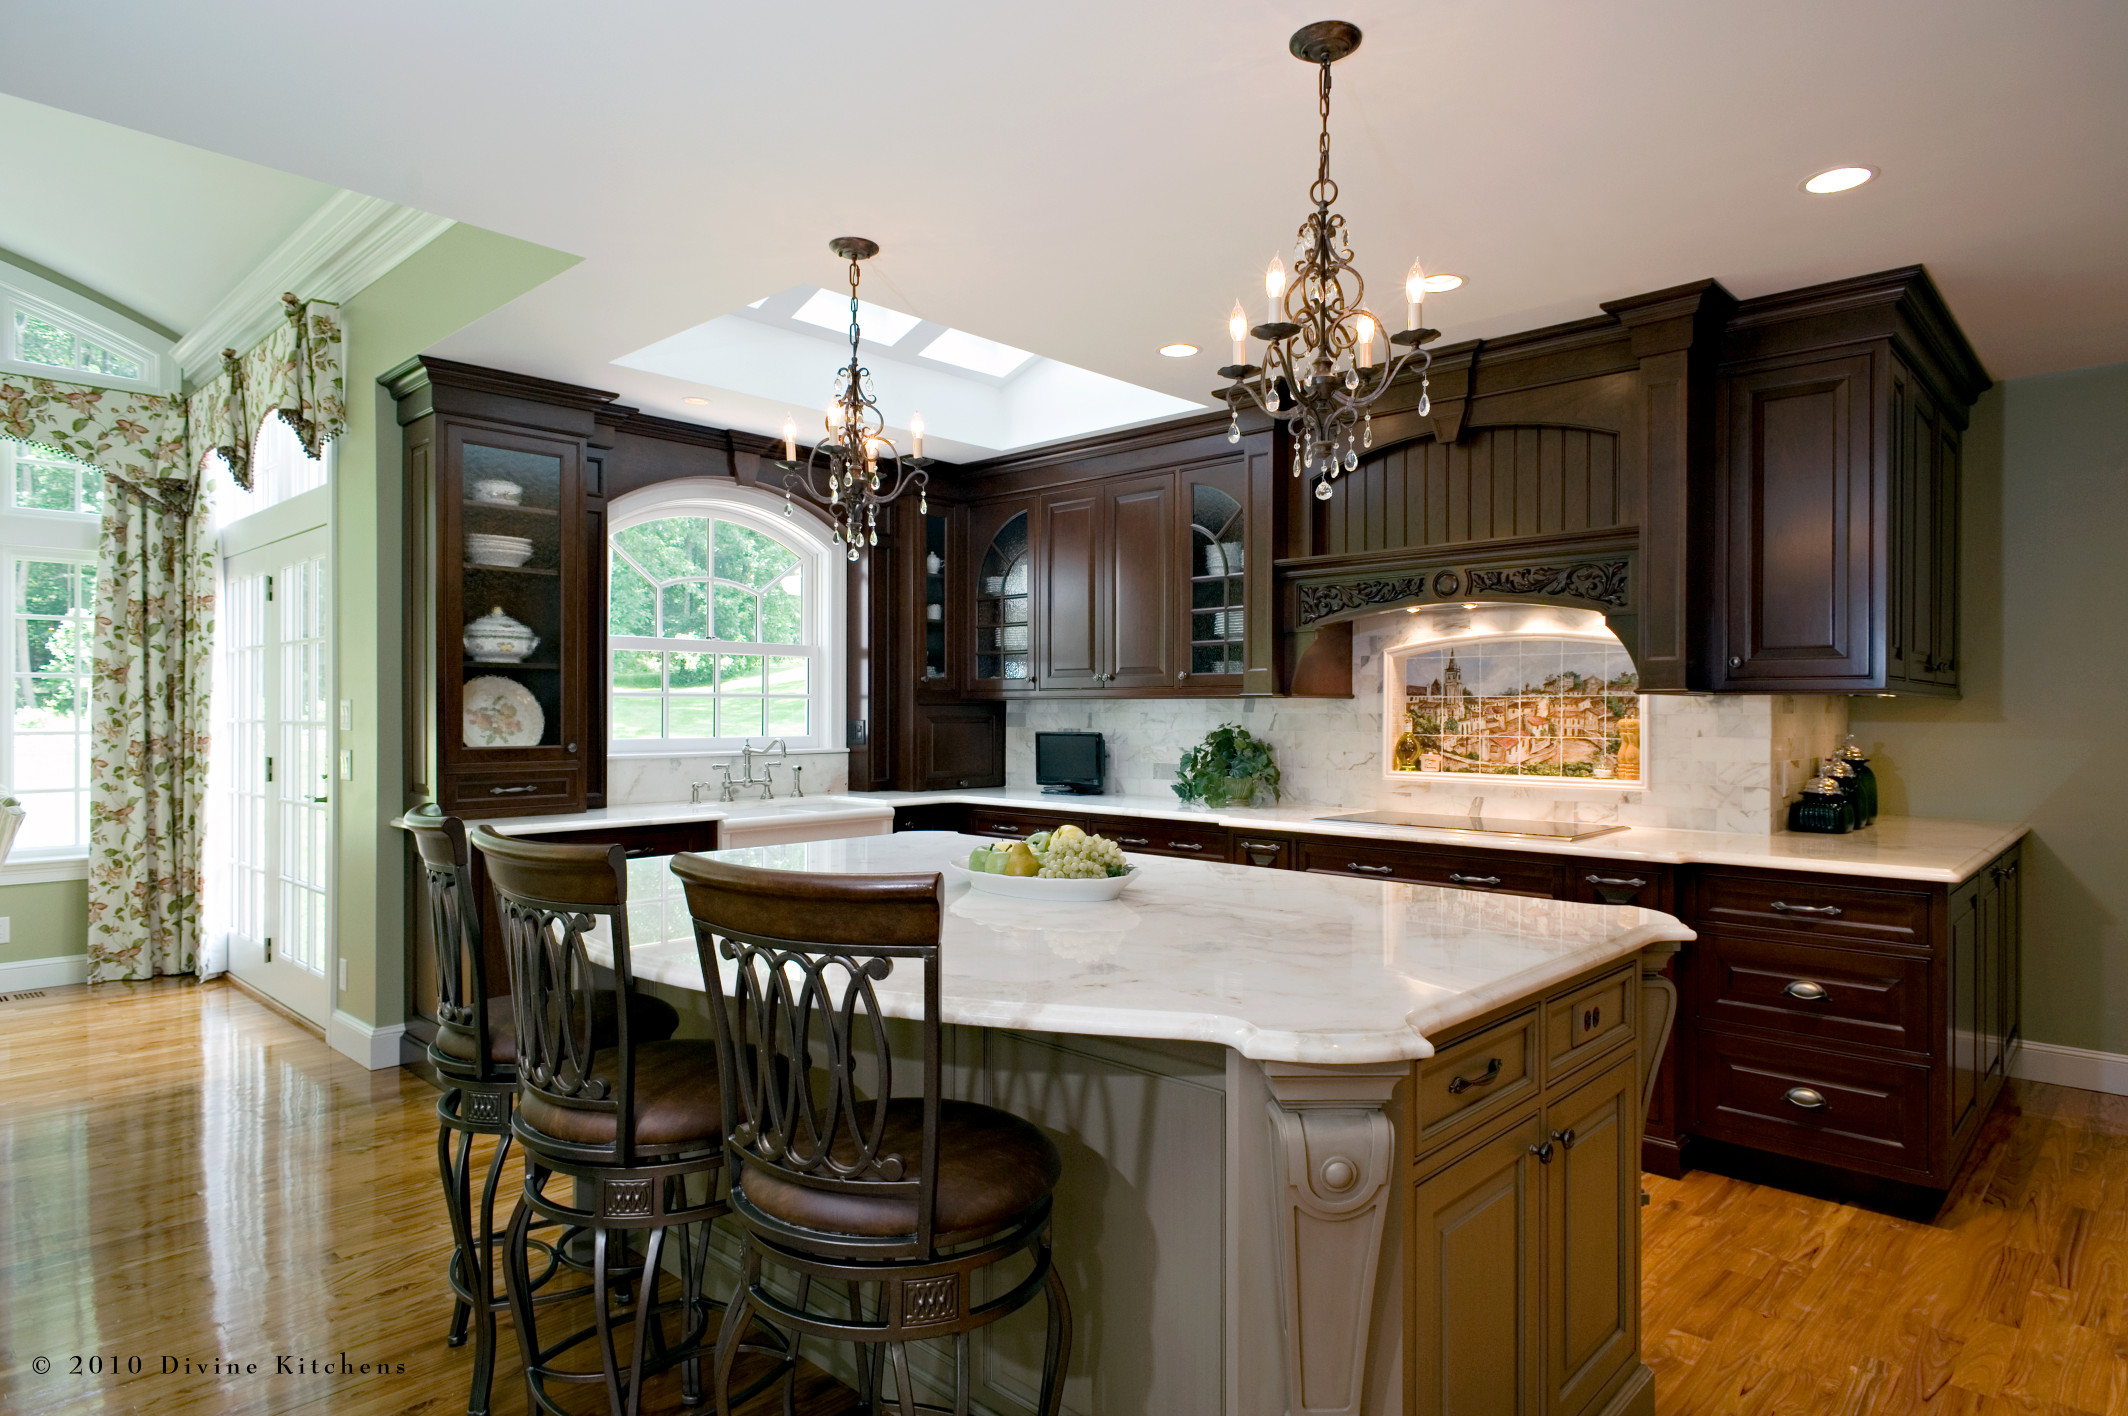 Traditional style kitchen with green and darkwood cabinets. French country inspired design with a mural backsplash. Marble countertops.